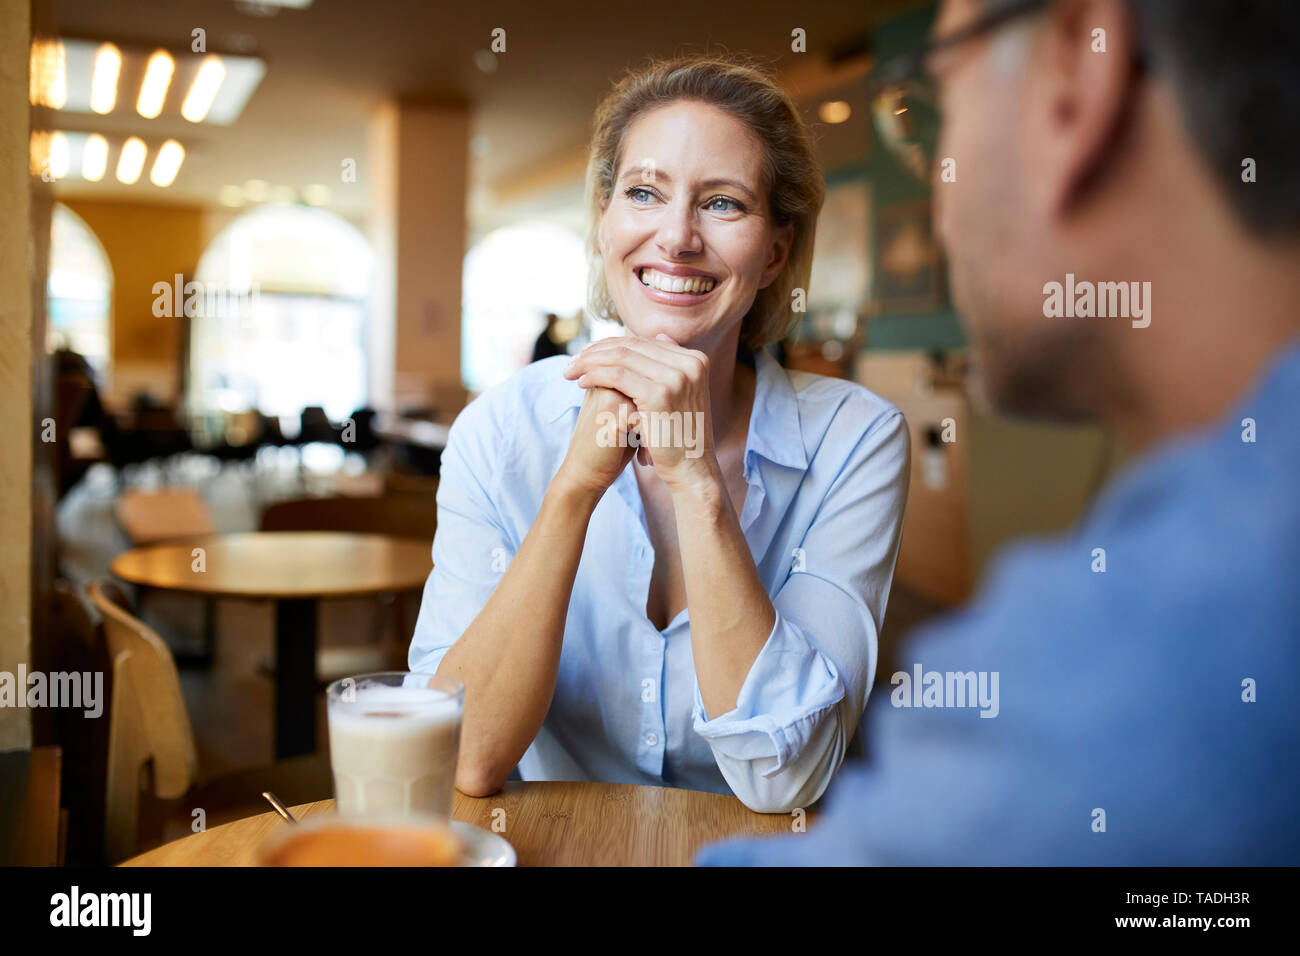 Portrait of happy woman with man in a cafe - Stock Image